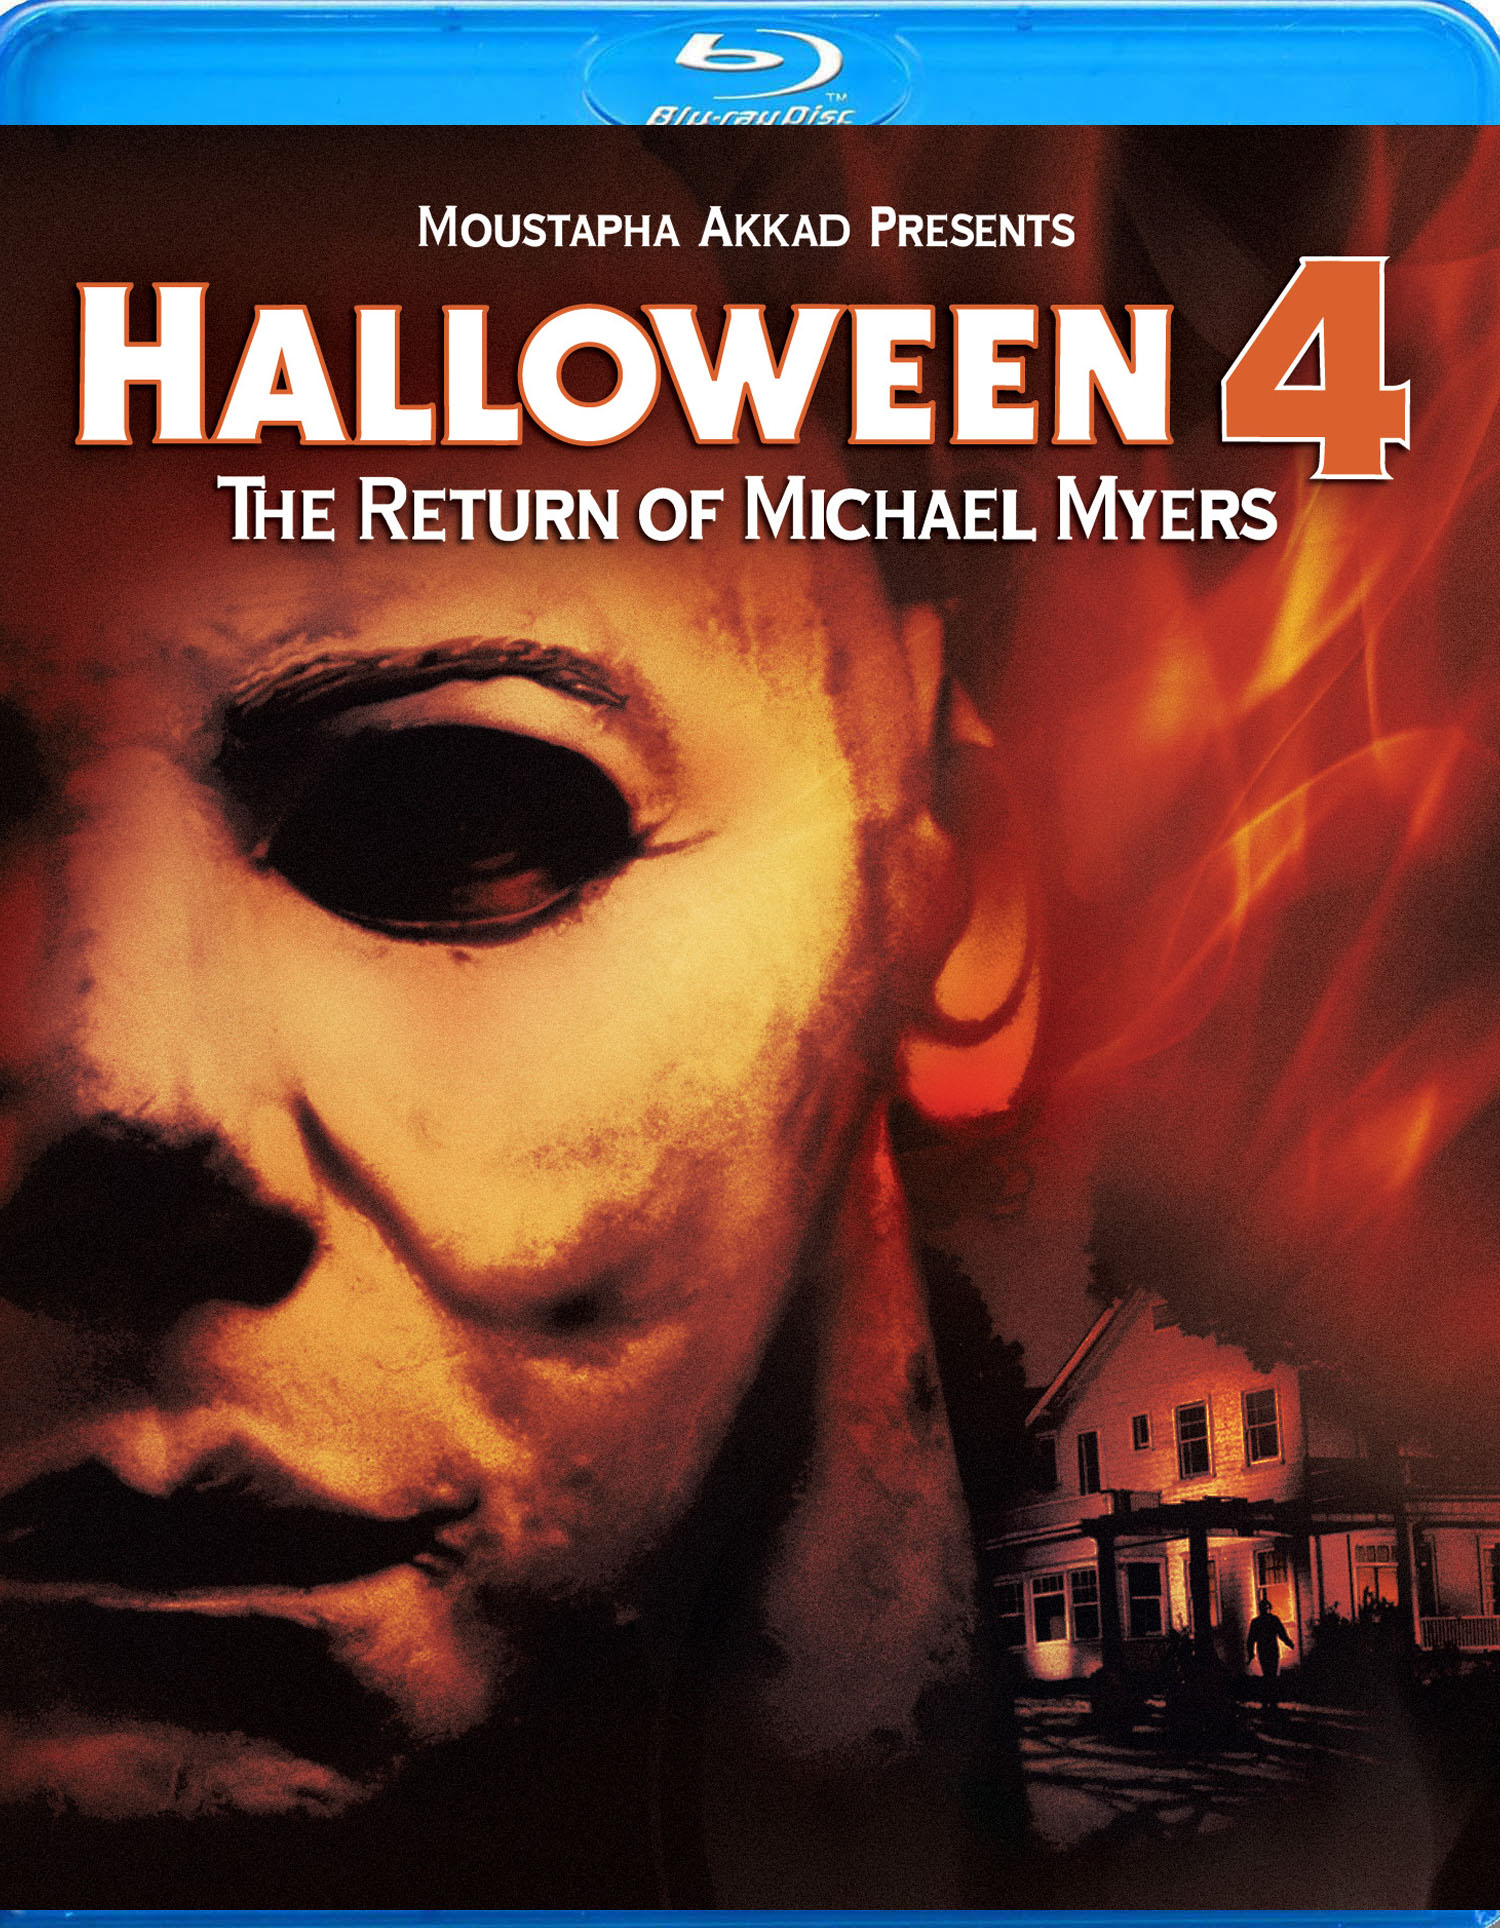 Halloween 5 Blu Ray.Revised Halloween 4 And Halloween 5 Specs Nope No Deleted